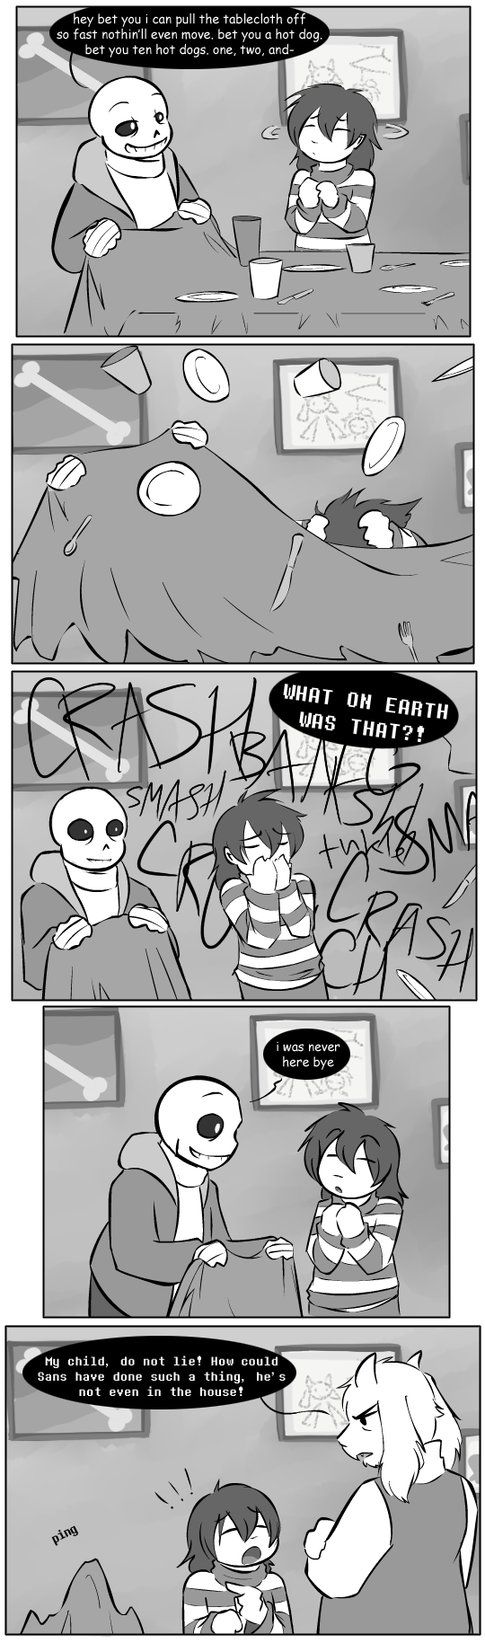 The perfect crime by zarla on DeviantArt